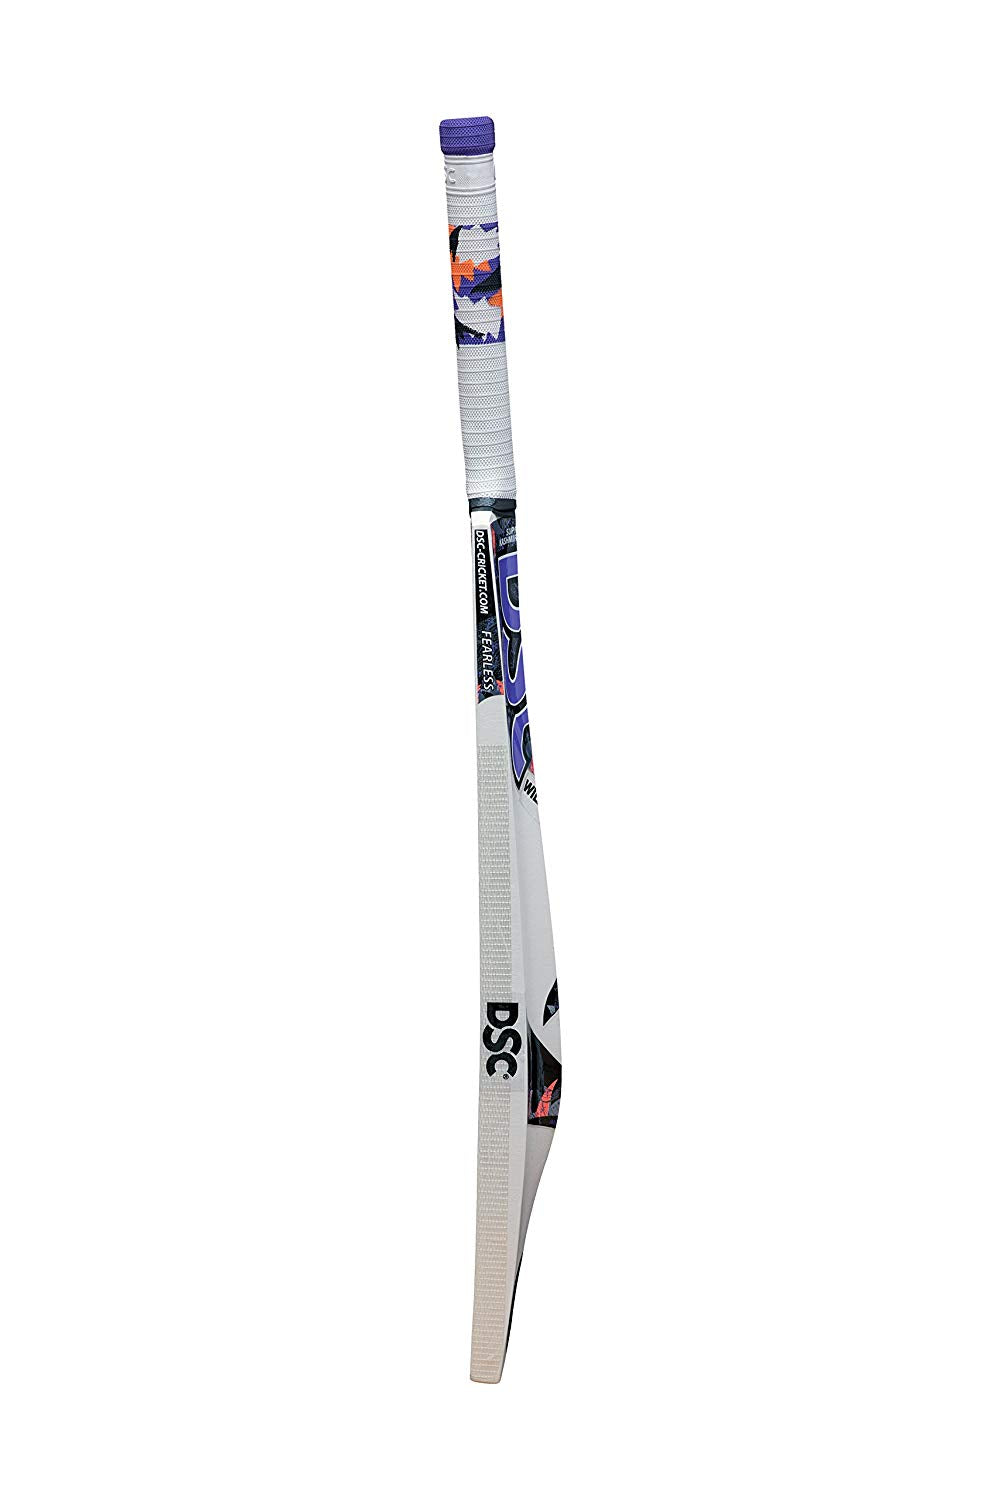 DSC Wildfire Ignite Tennis Cricket Bat Short Handle Mens